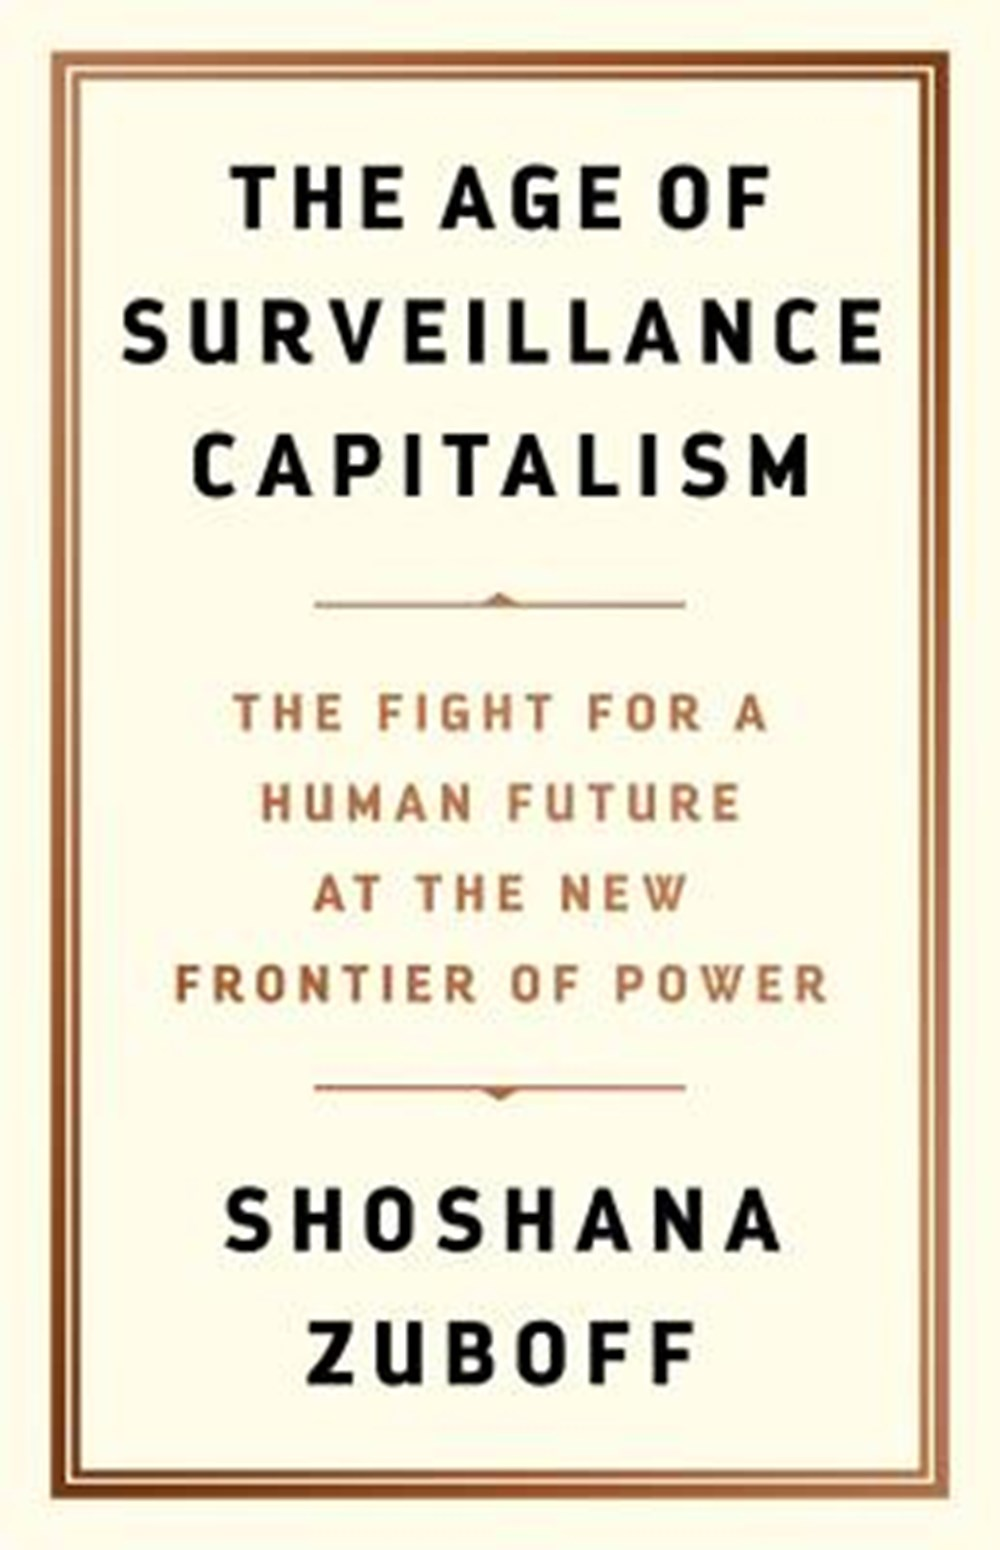 Age of Surveillance Capitalism The Fight for a Human Future at the New Frontier of Power